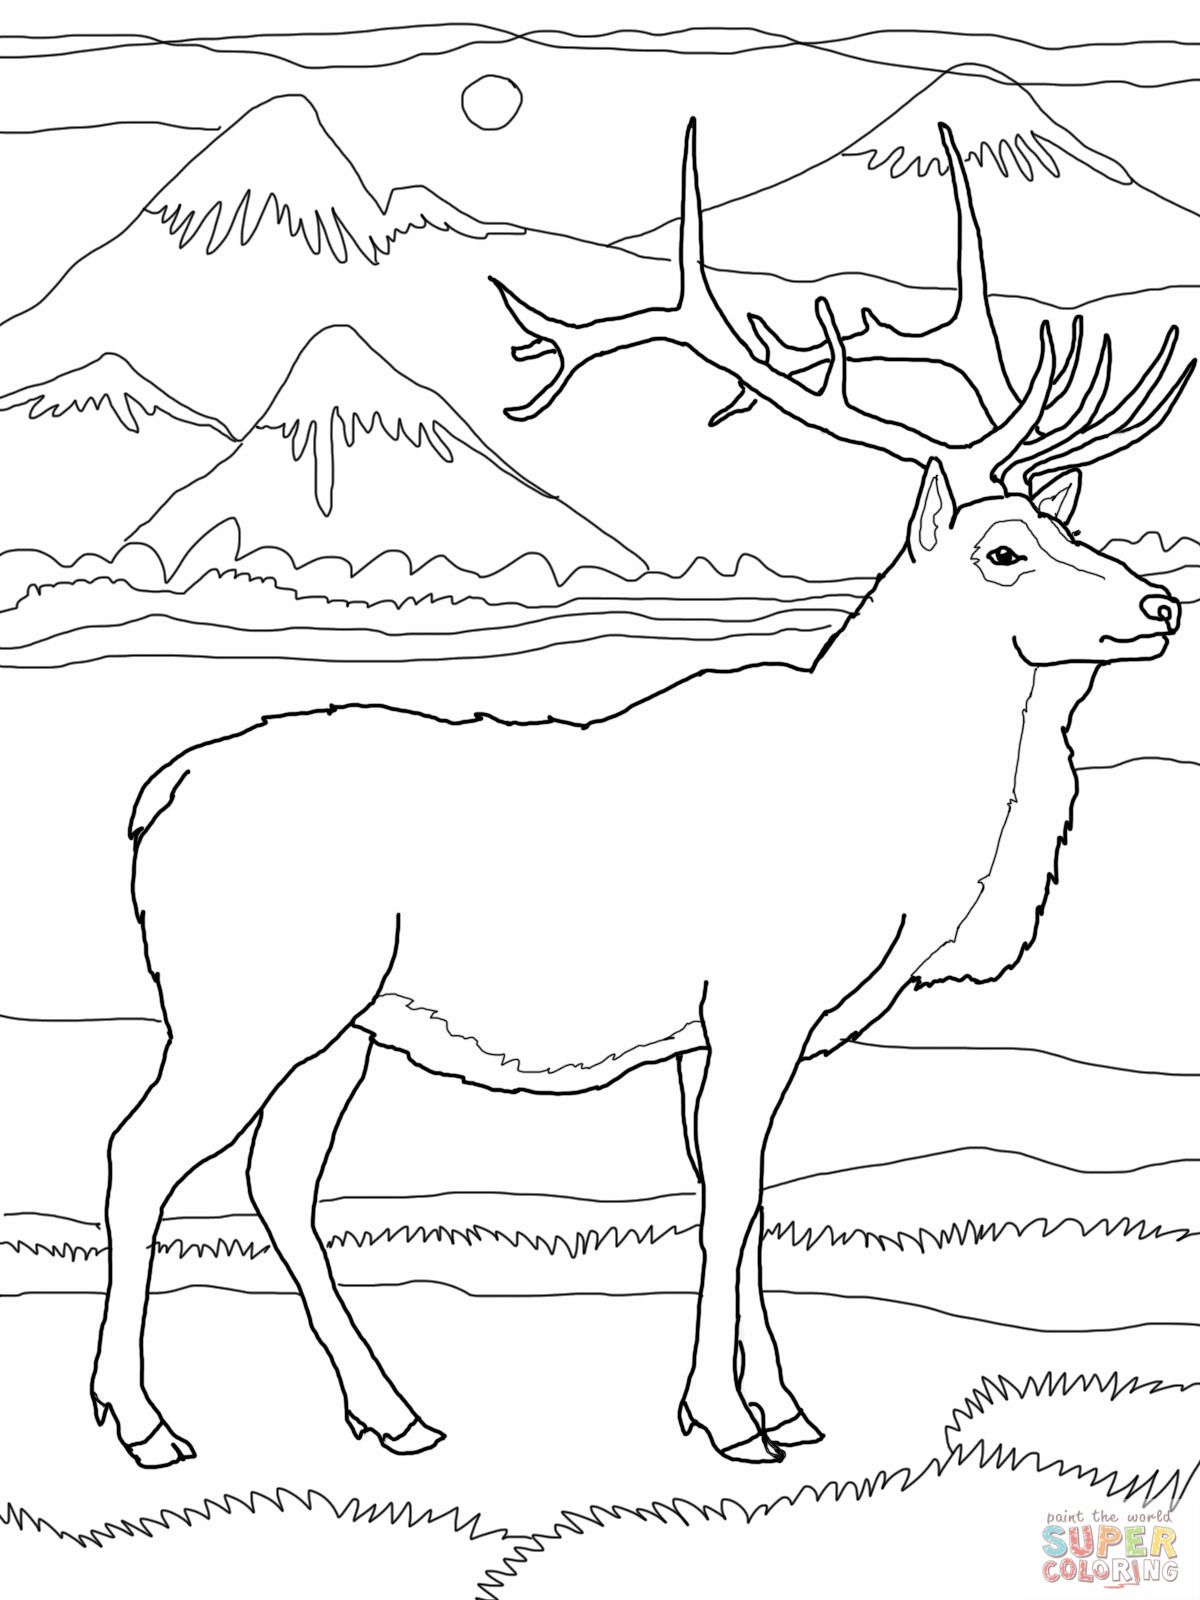 Wapiti Colouring Pages Deer Coloring Pages Super Coloring Pages Online Coloring Pages